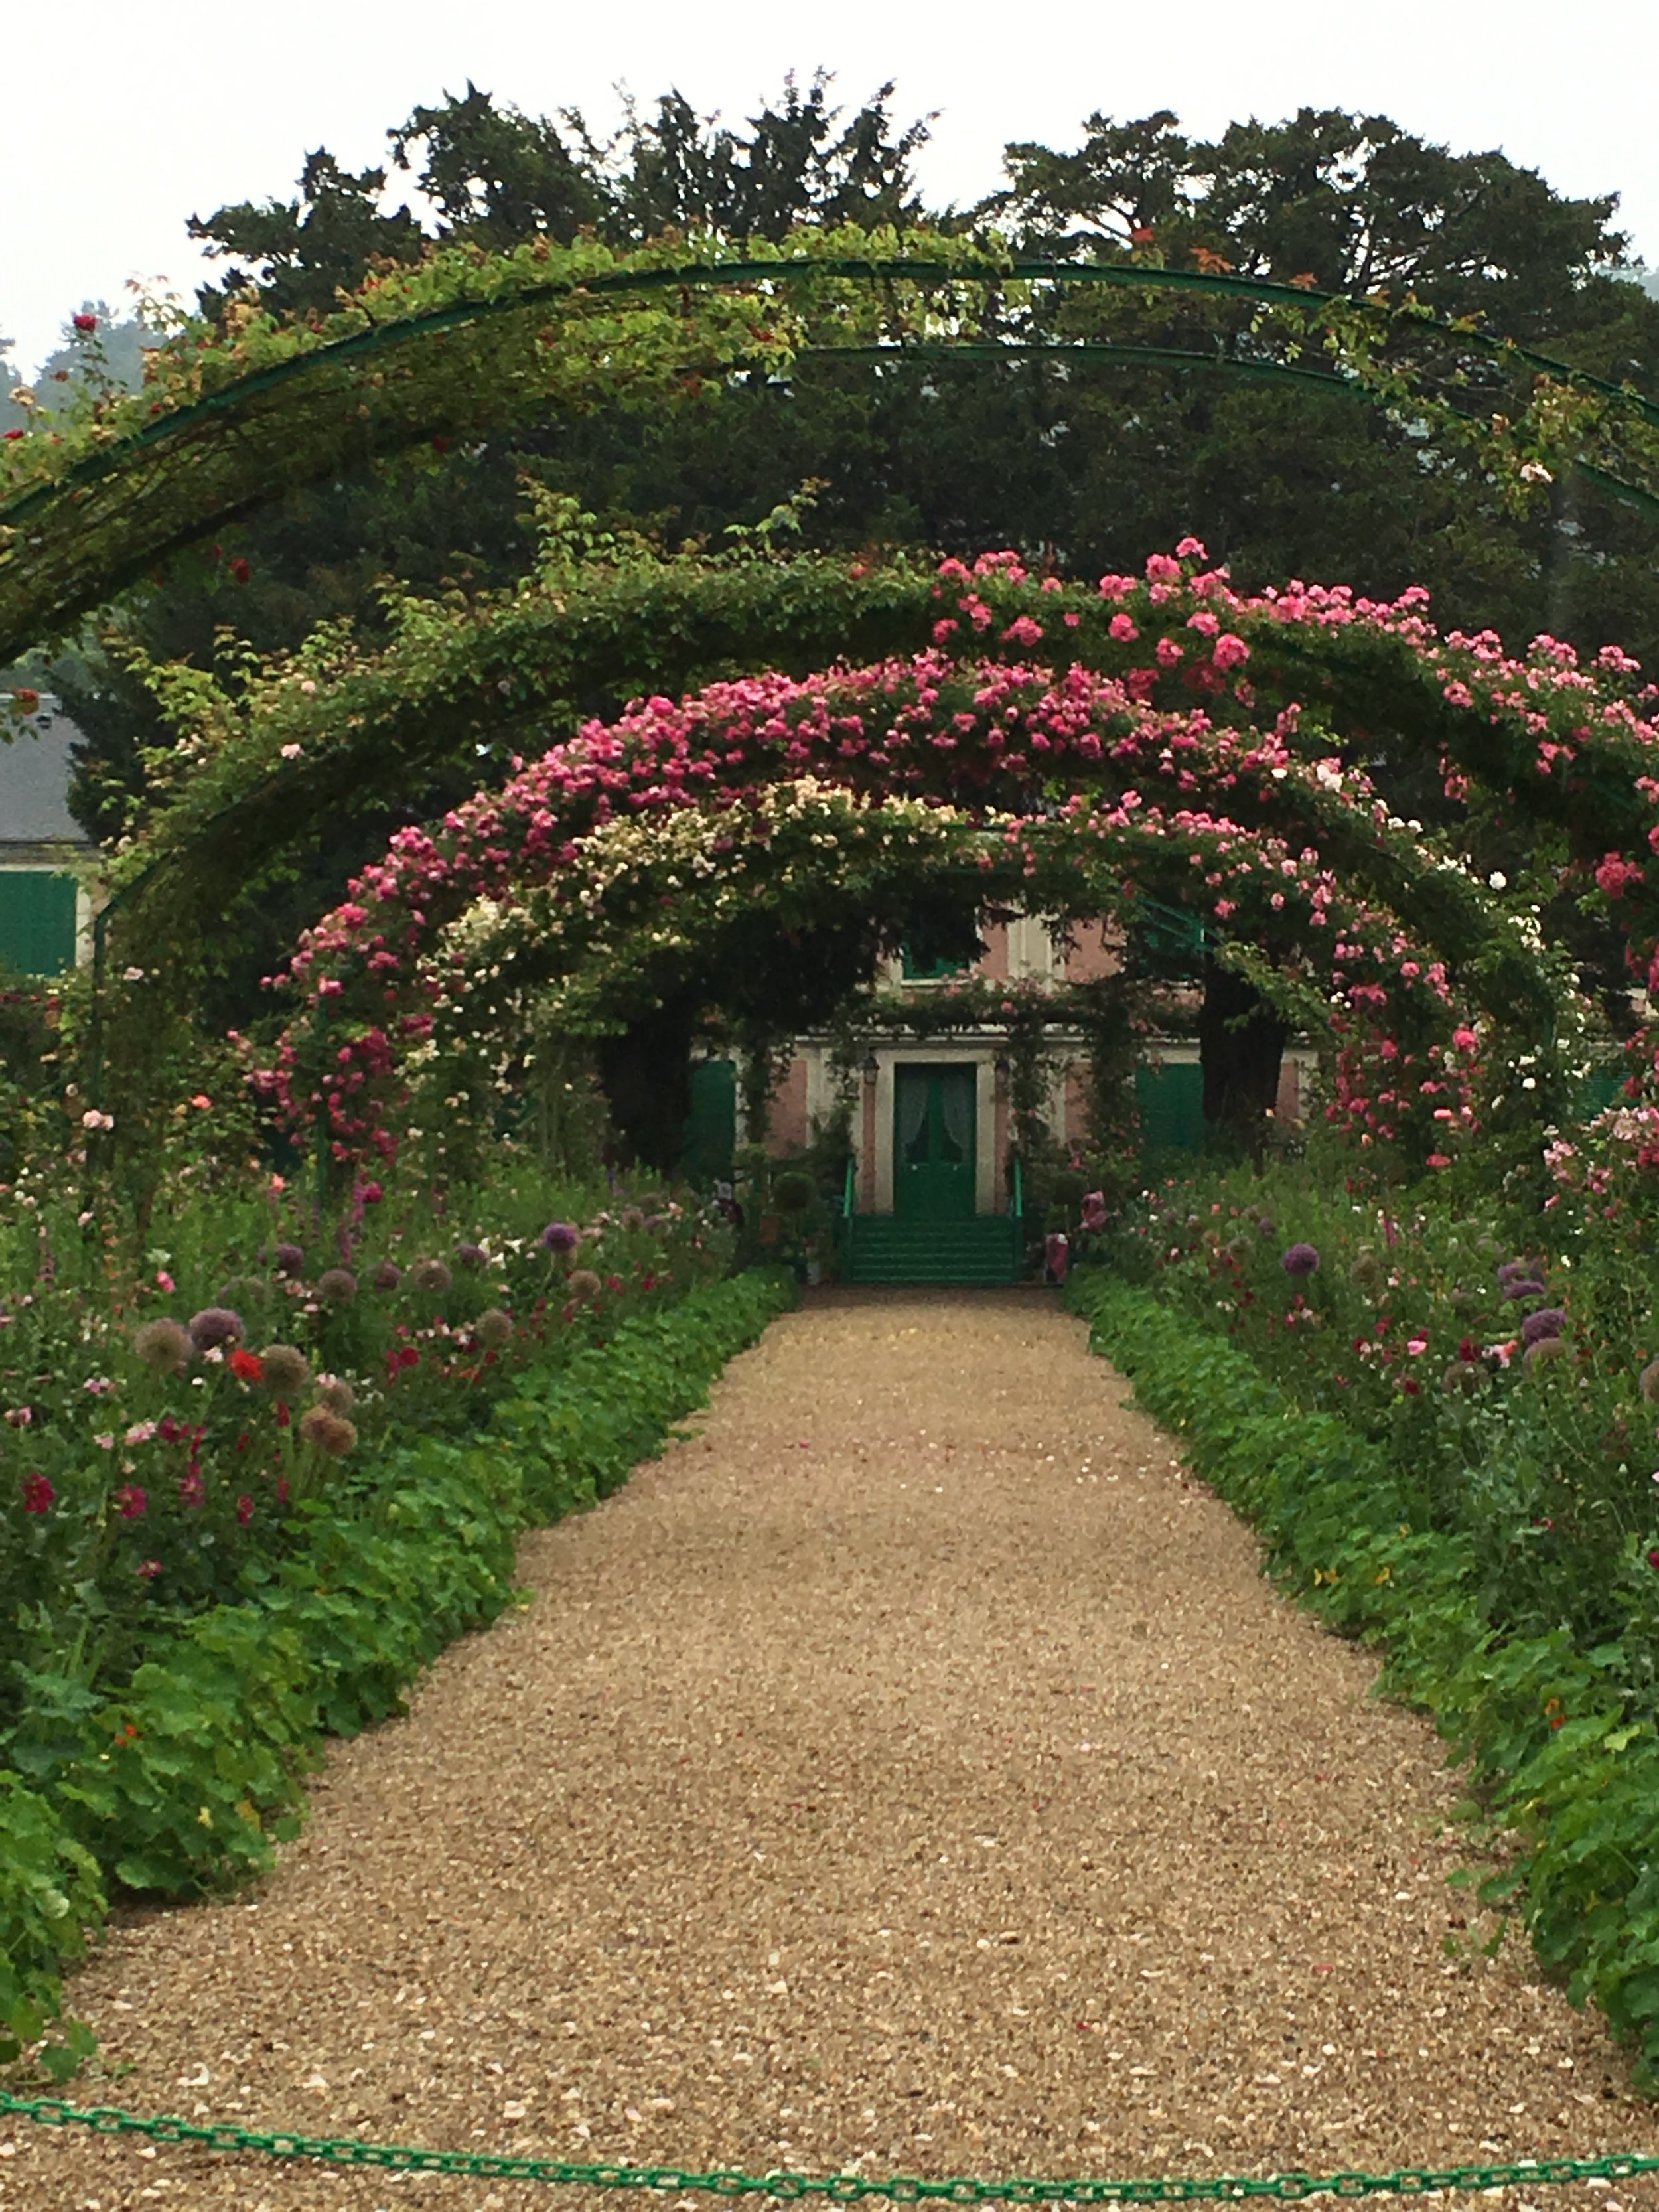 The front door to Monet's house, viewed through the rose arbors